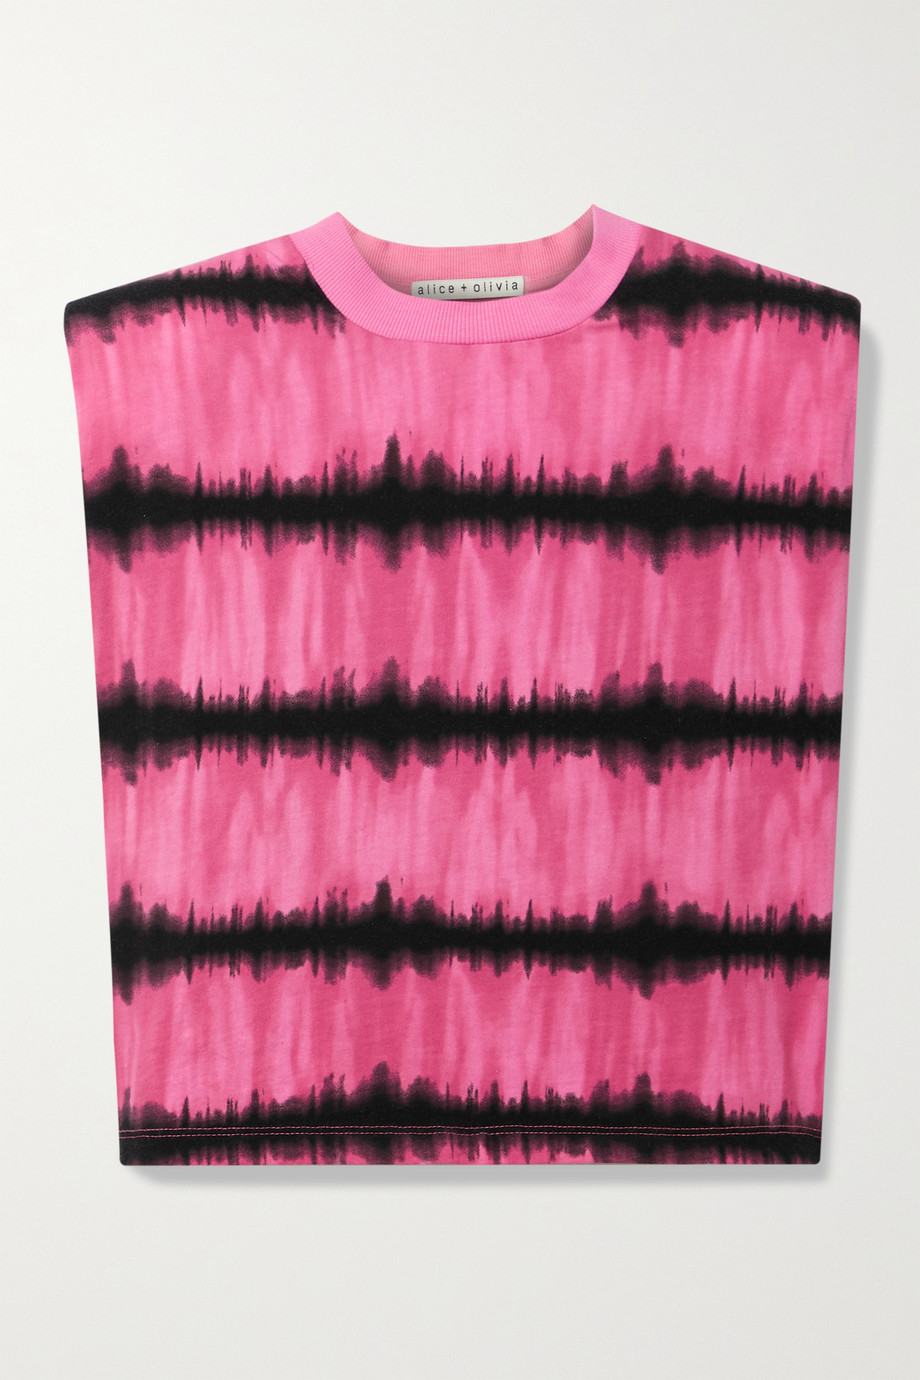 Alice + Olivia Desma cropped tie-dyed cotton-jersey tank